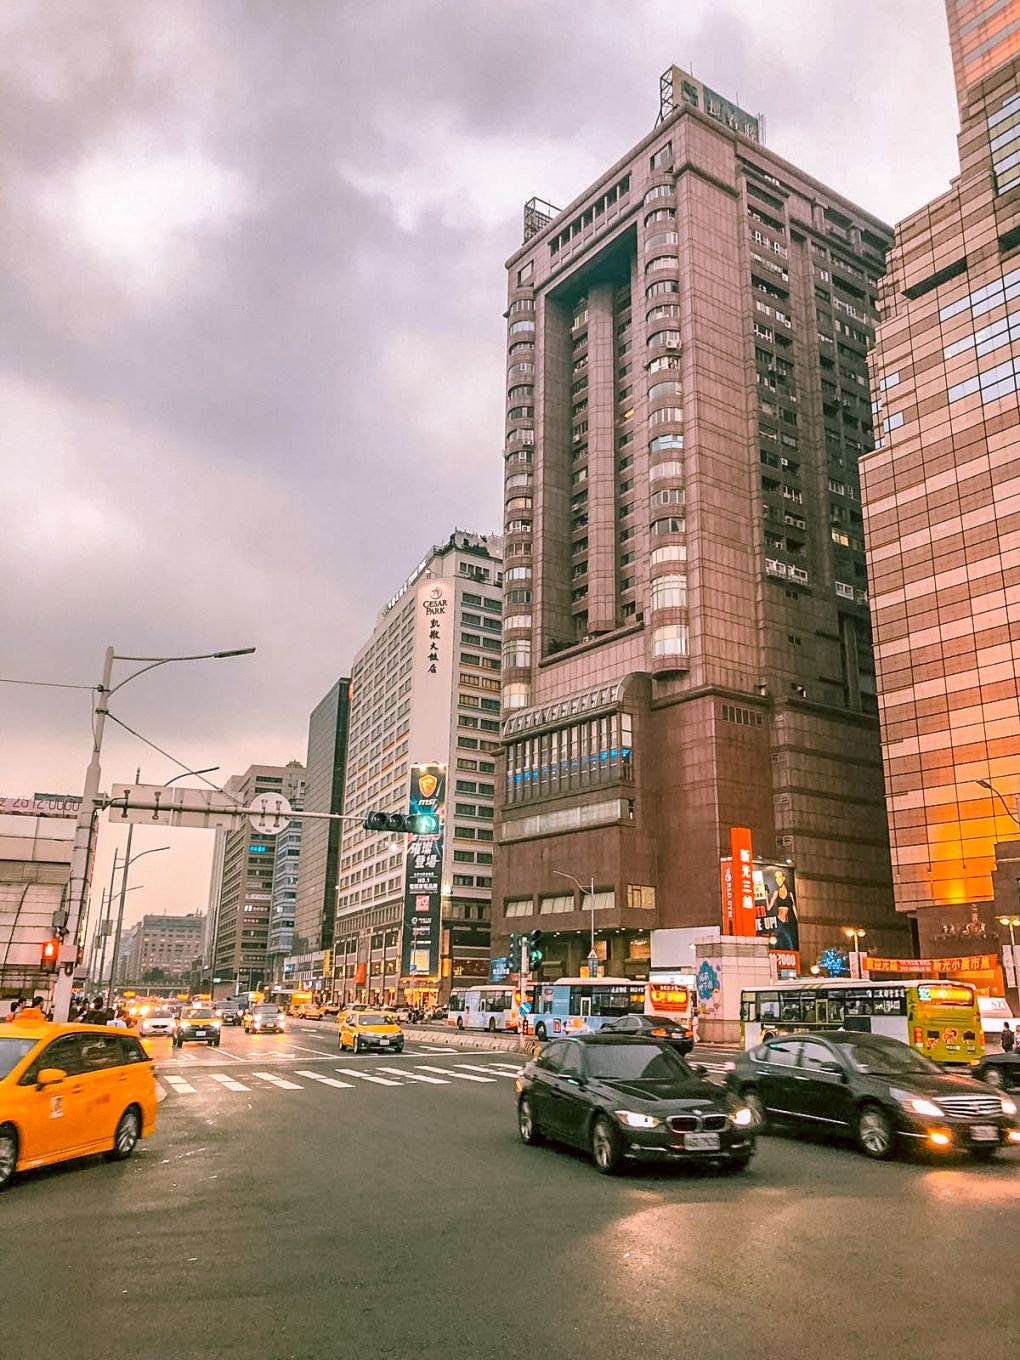 First impressions of Taipei